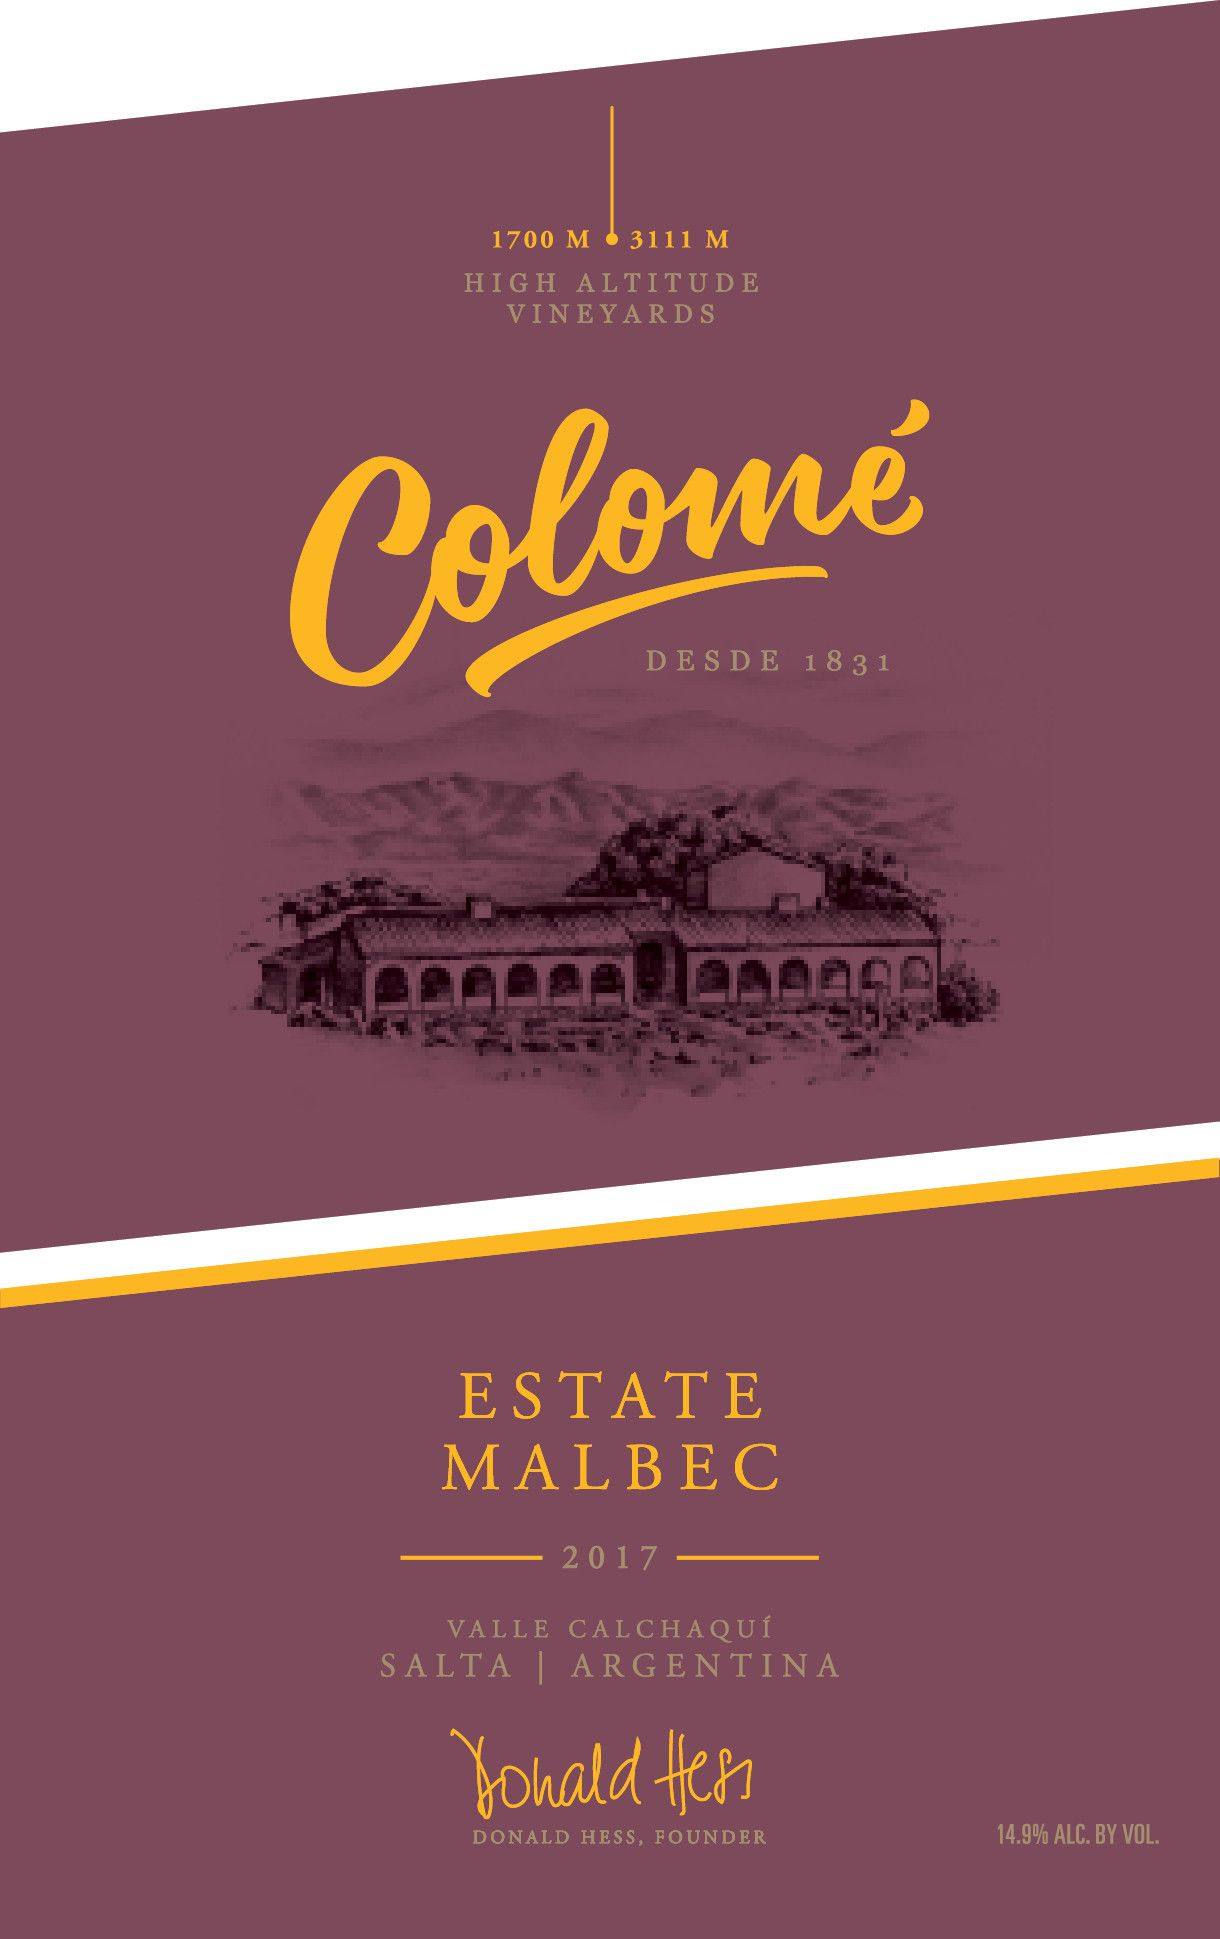 Bodega Colome Estate Malbec 2017  Front Label